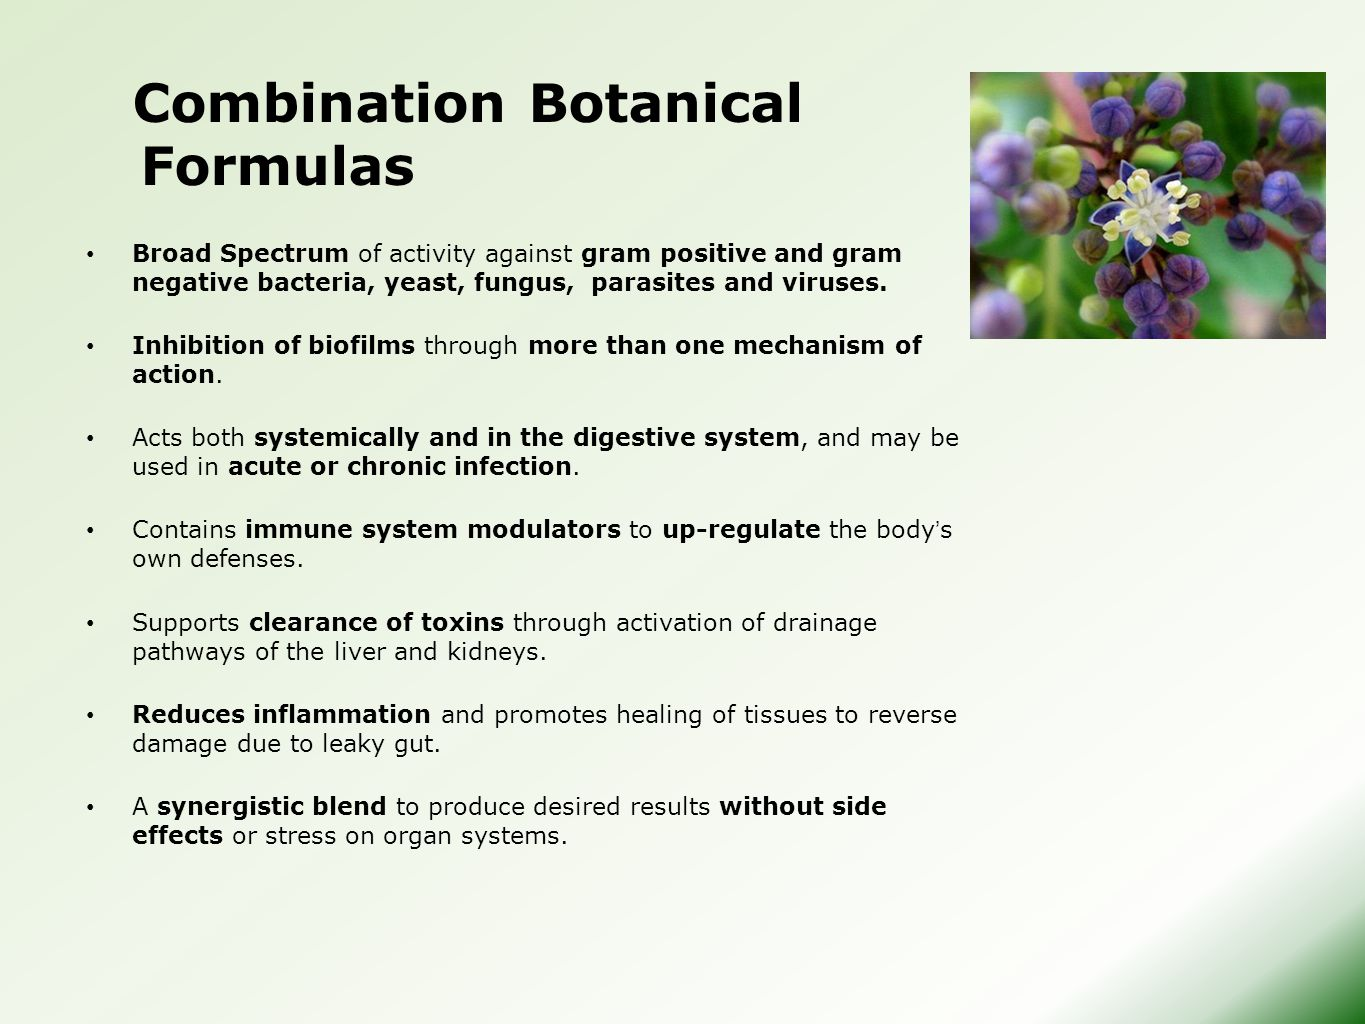 Combination Botanical Formulas